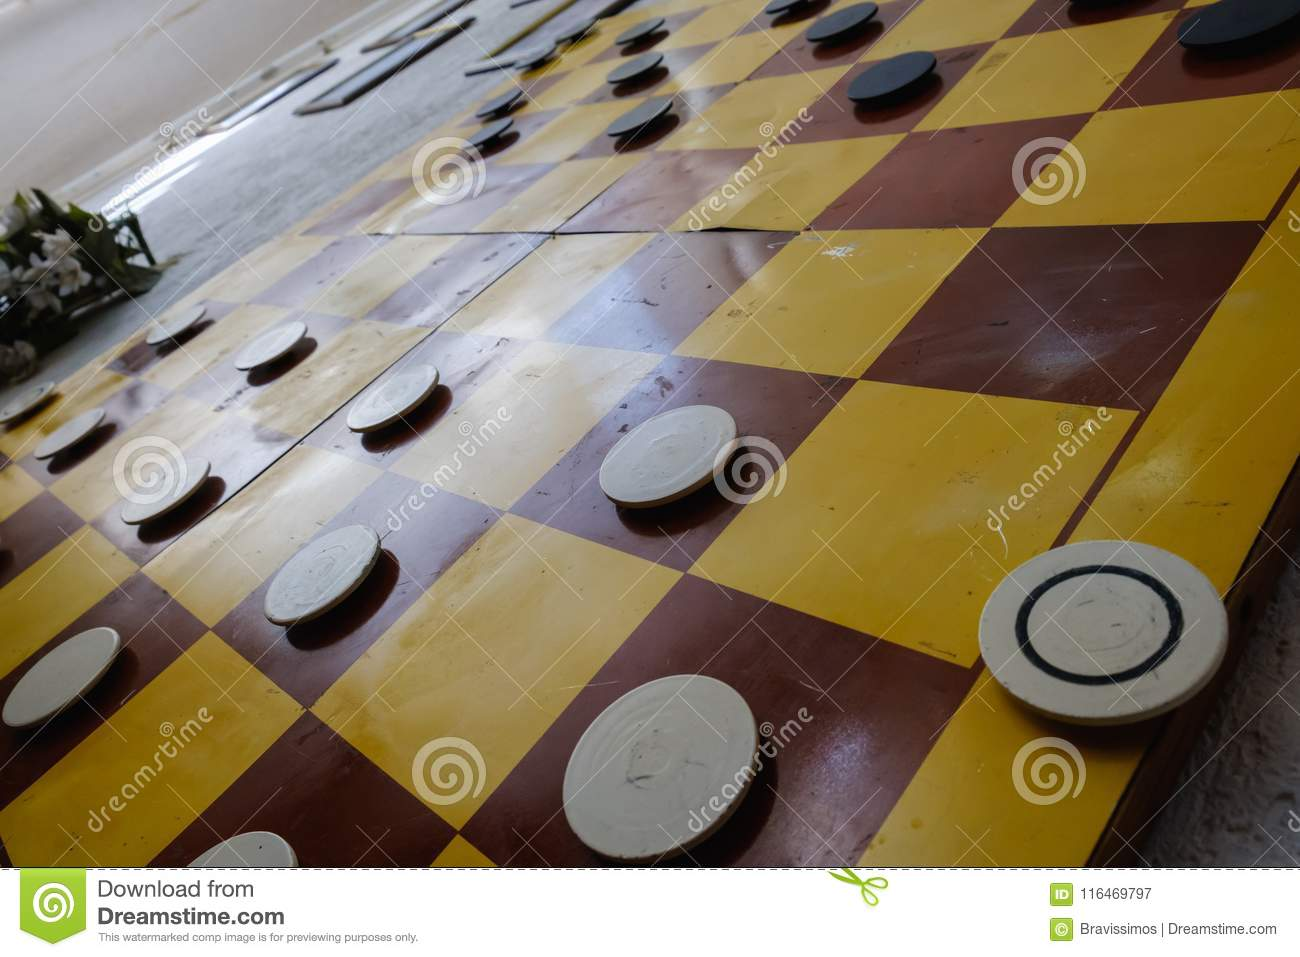 Close up of playing draughts or checkers board game